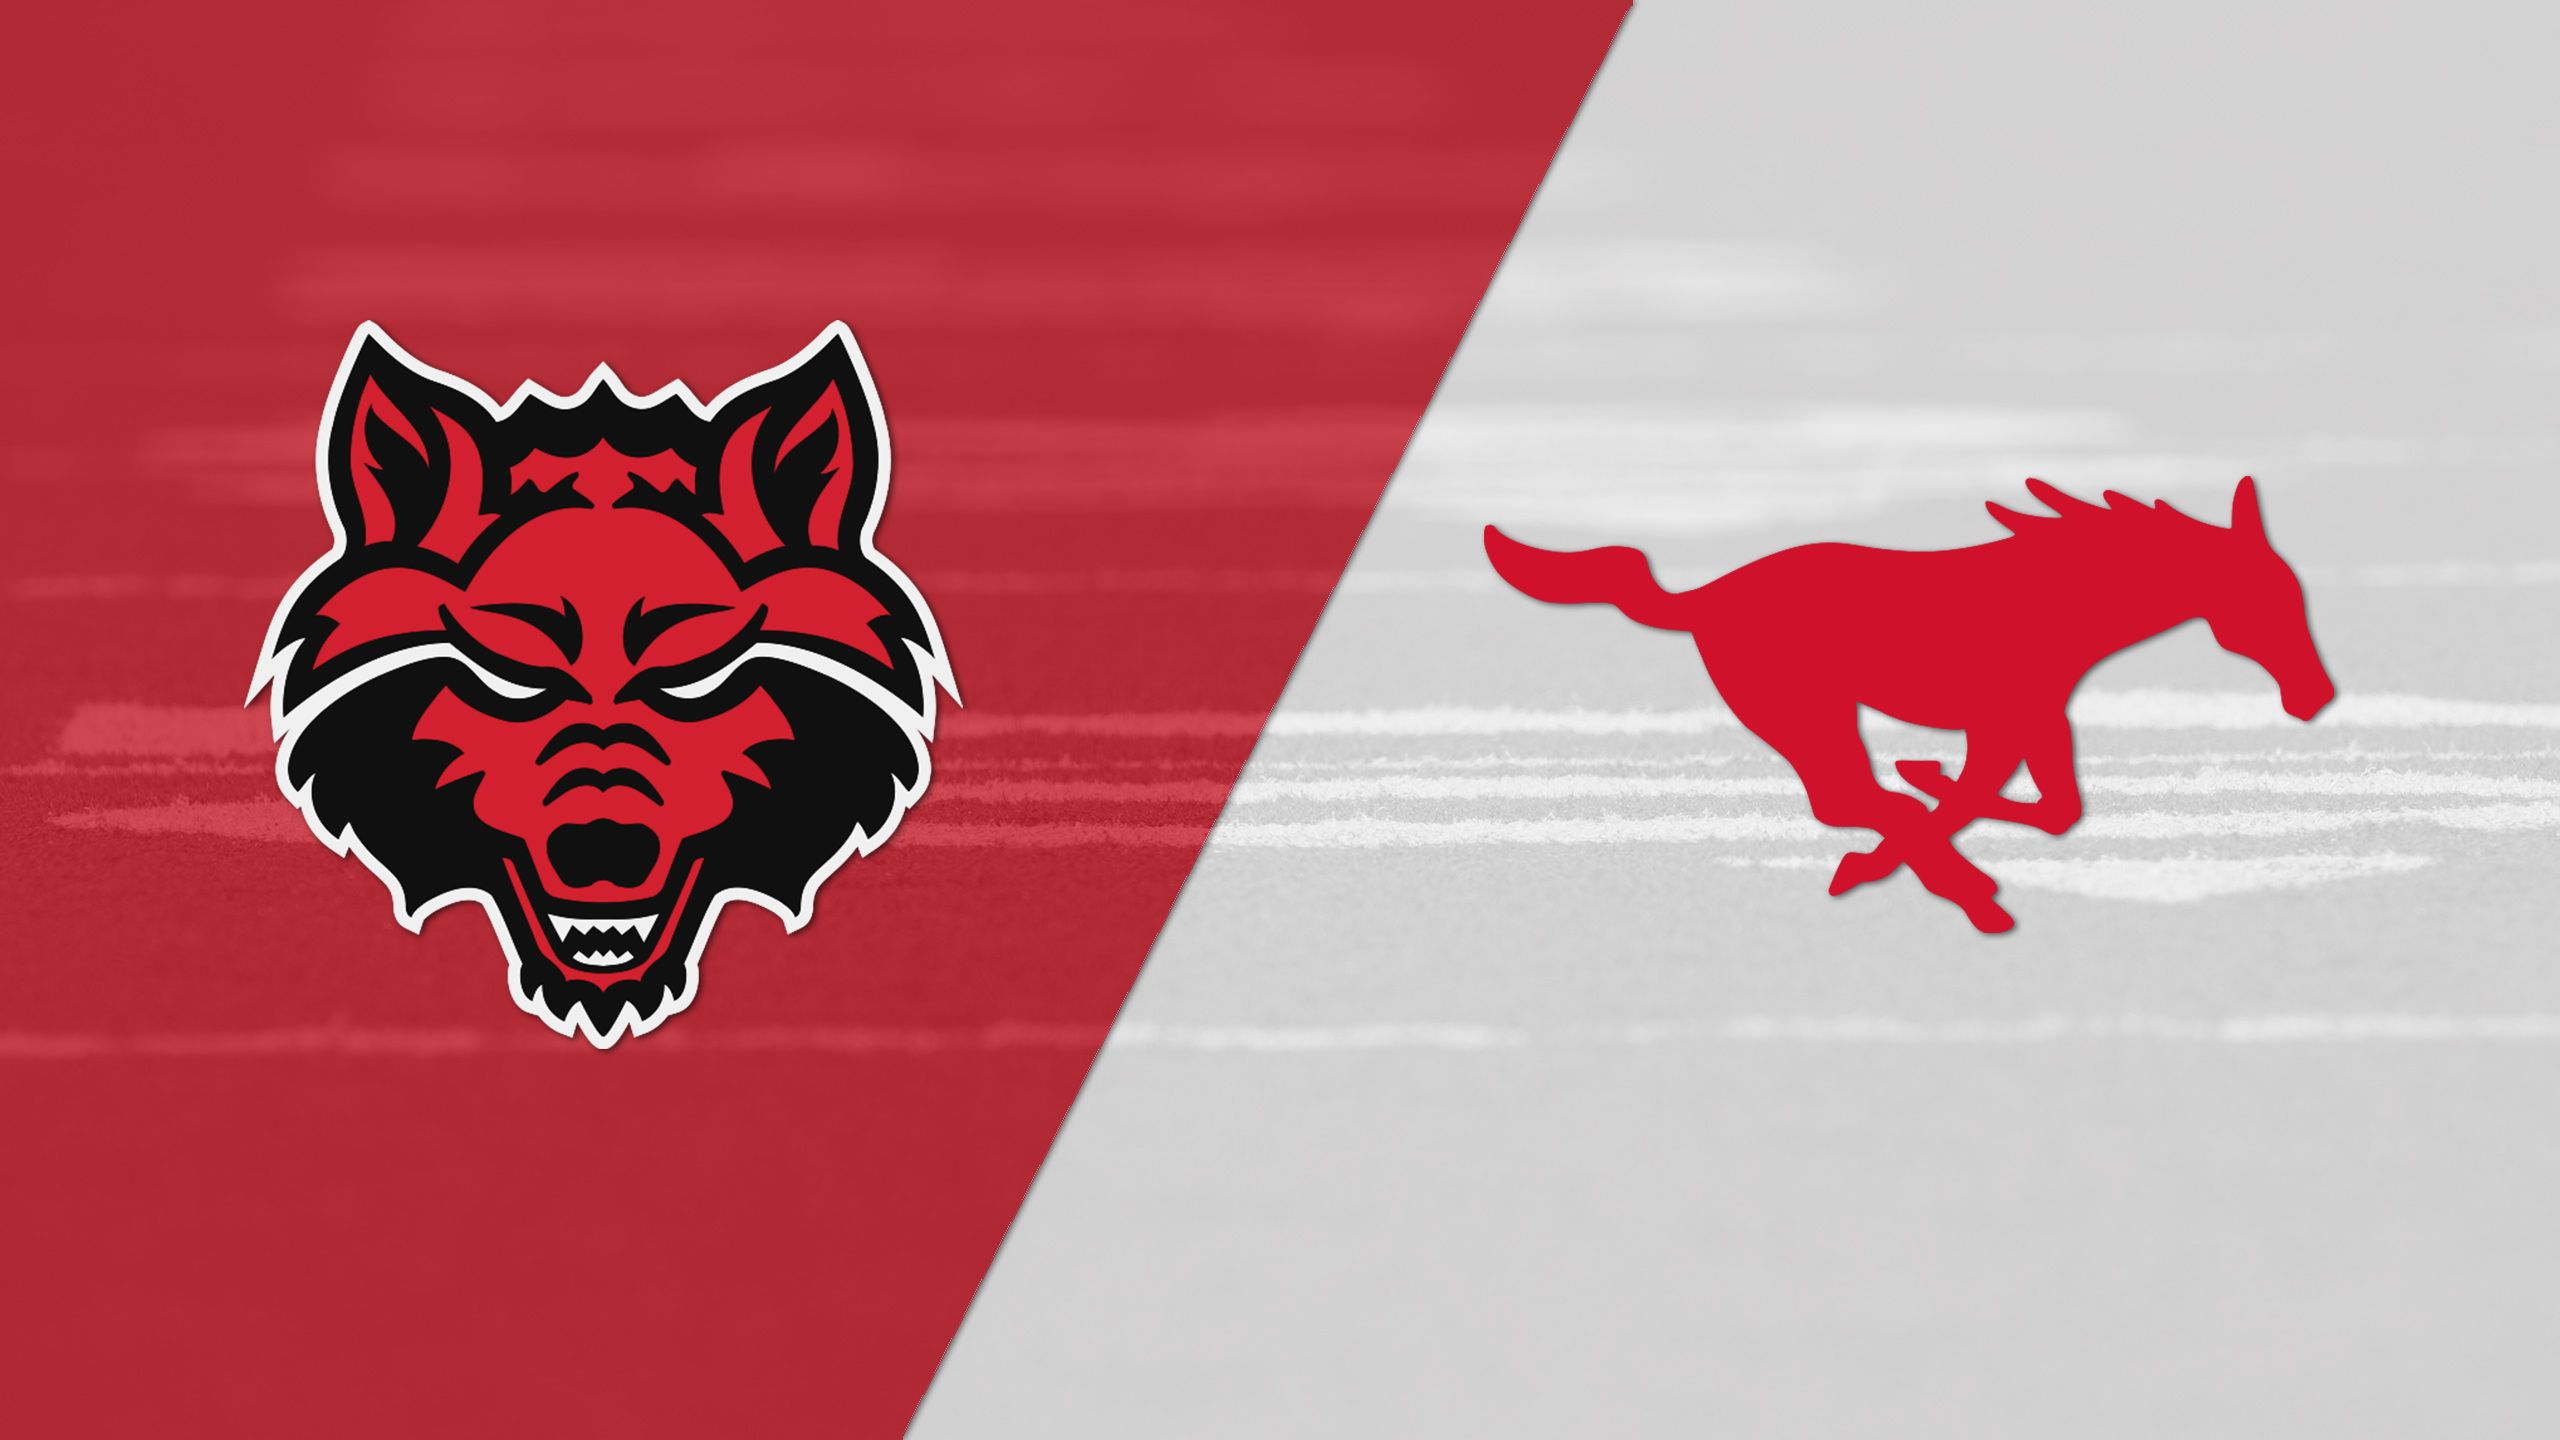 Arkansas State vs. SMU (Football)